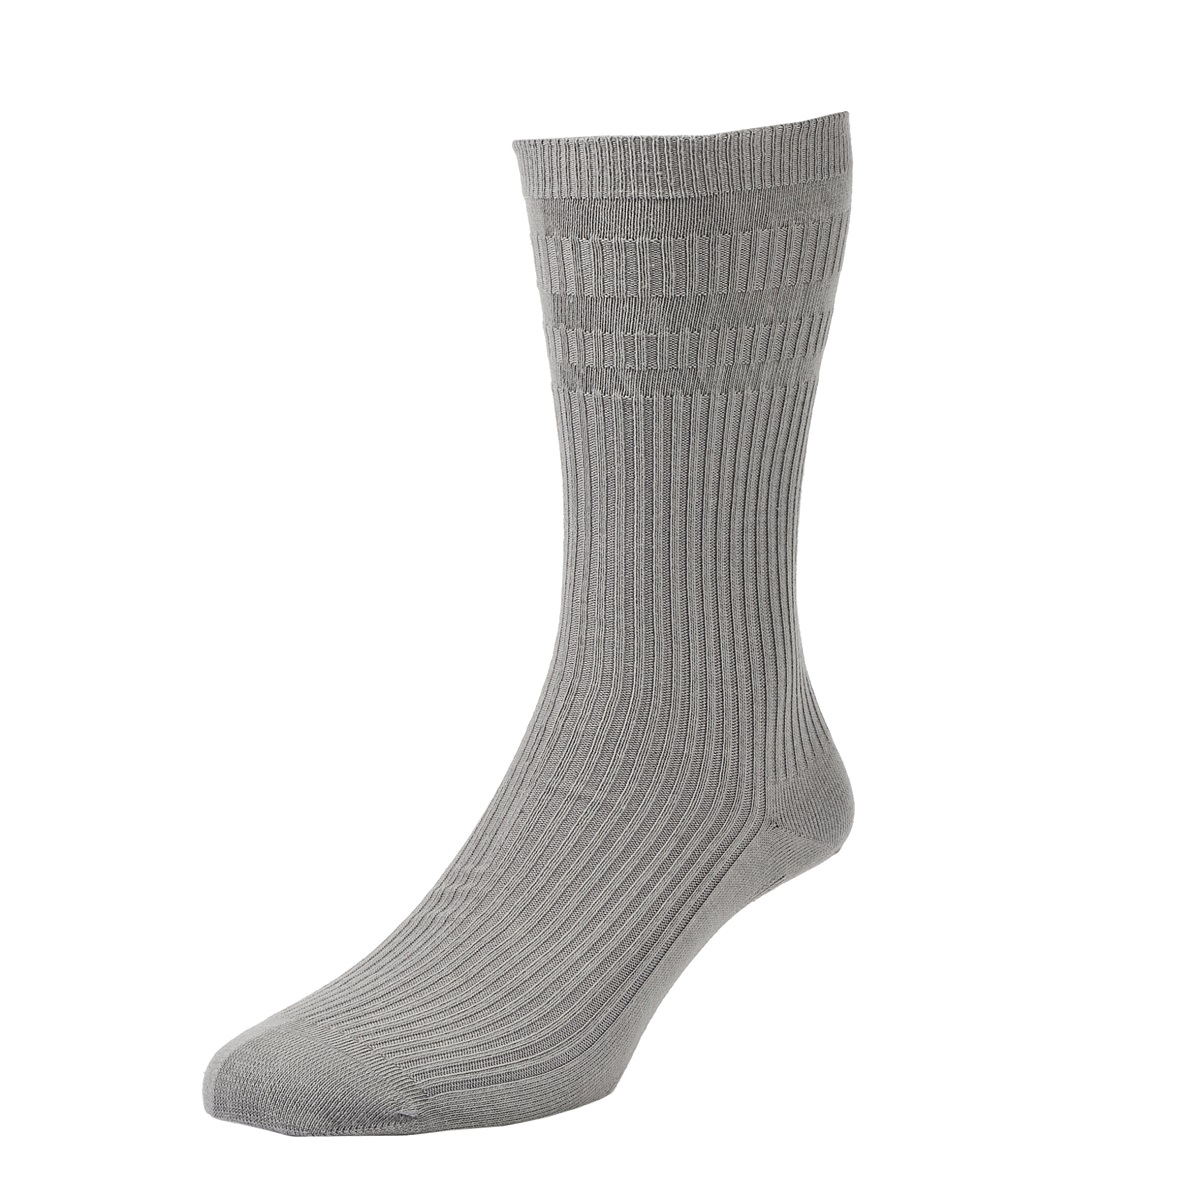 HJ Hall Softop Mens Cotton Socks size 11-13  Mid Grey HJ91